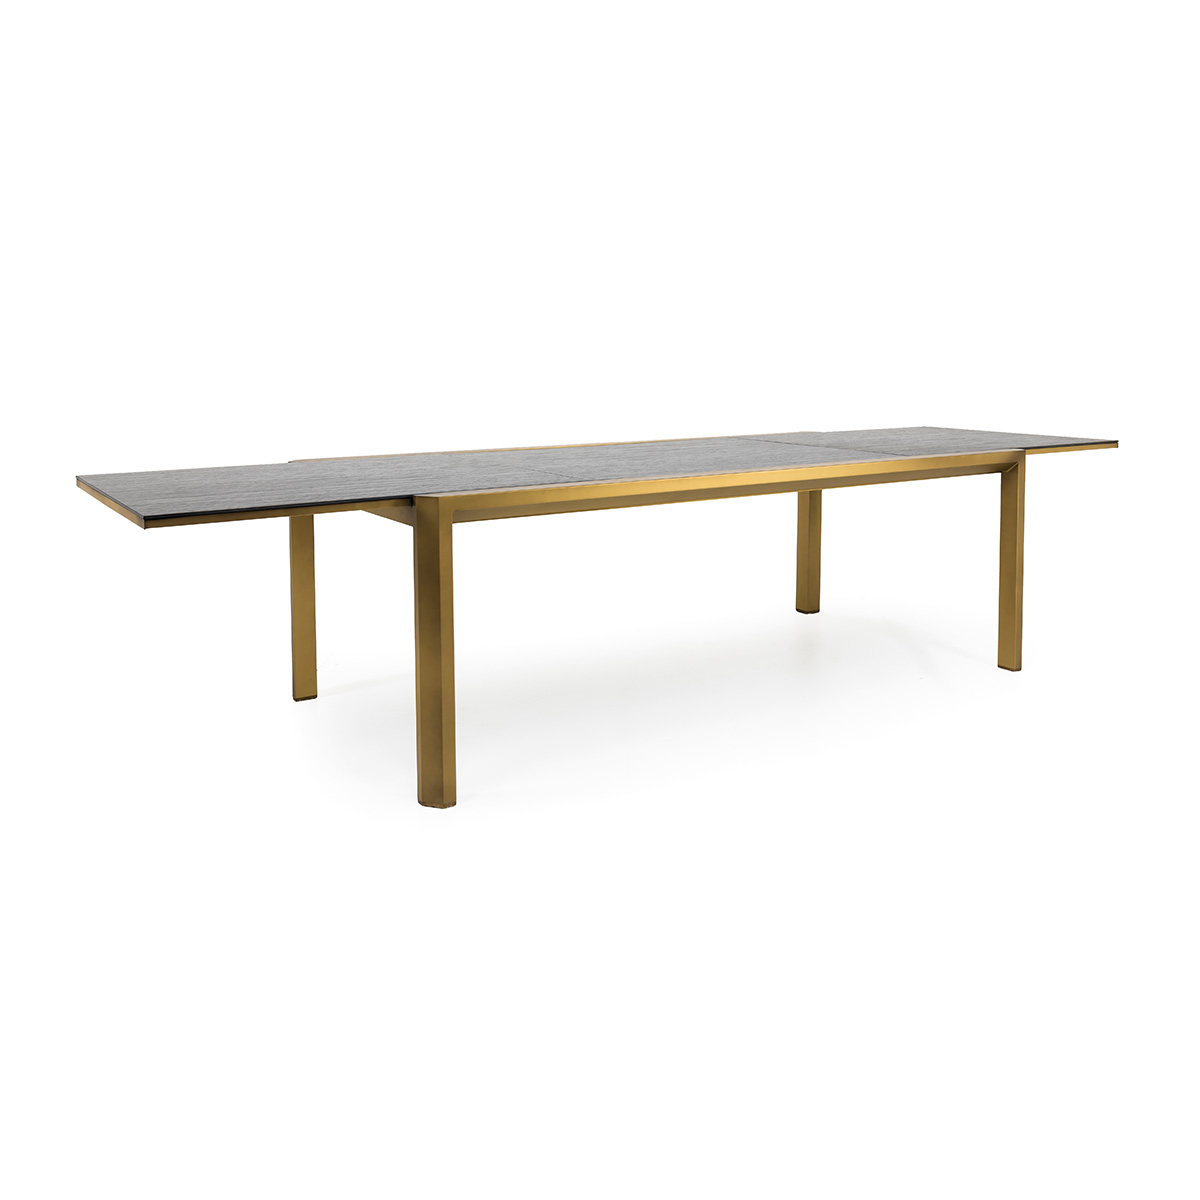 Extendible dining table Tables Braid